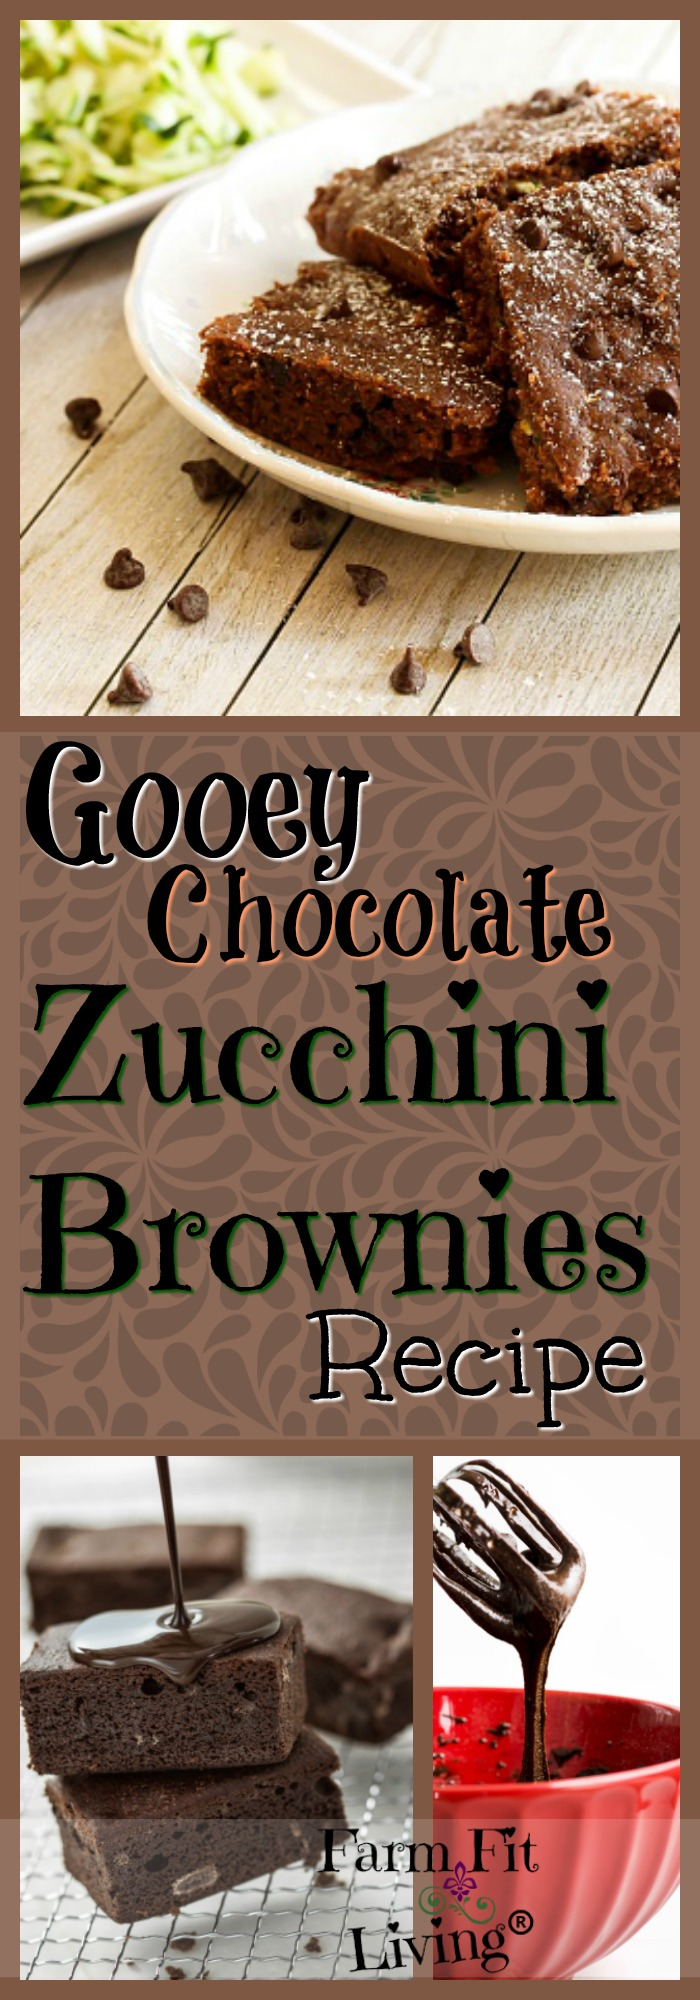 Looking for a chocolate zucchini brownies recipe to use up excess zucchini and cure your brownie cravings? This is the best recipe I've found. Enjoy!